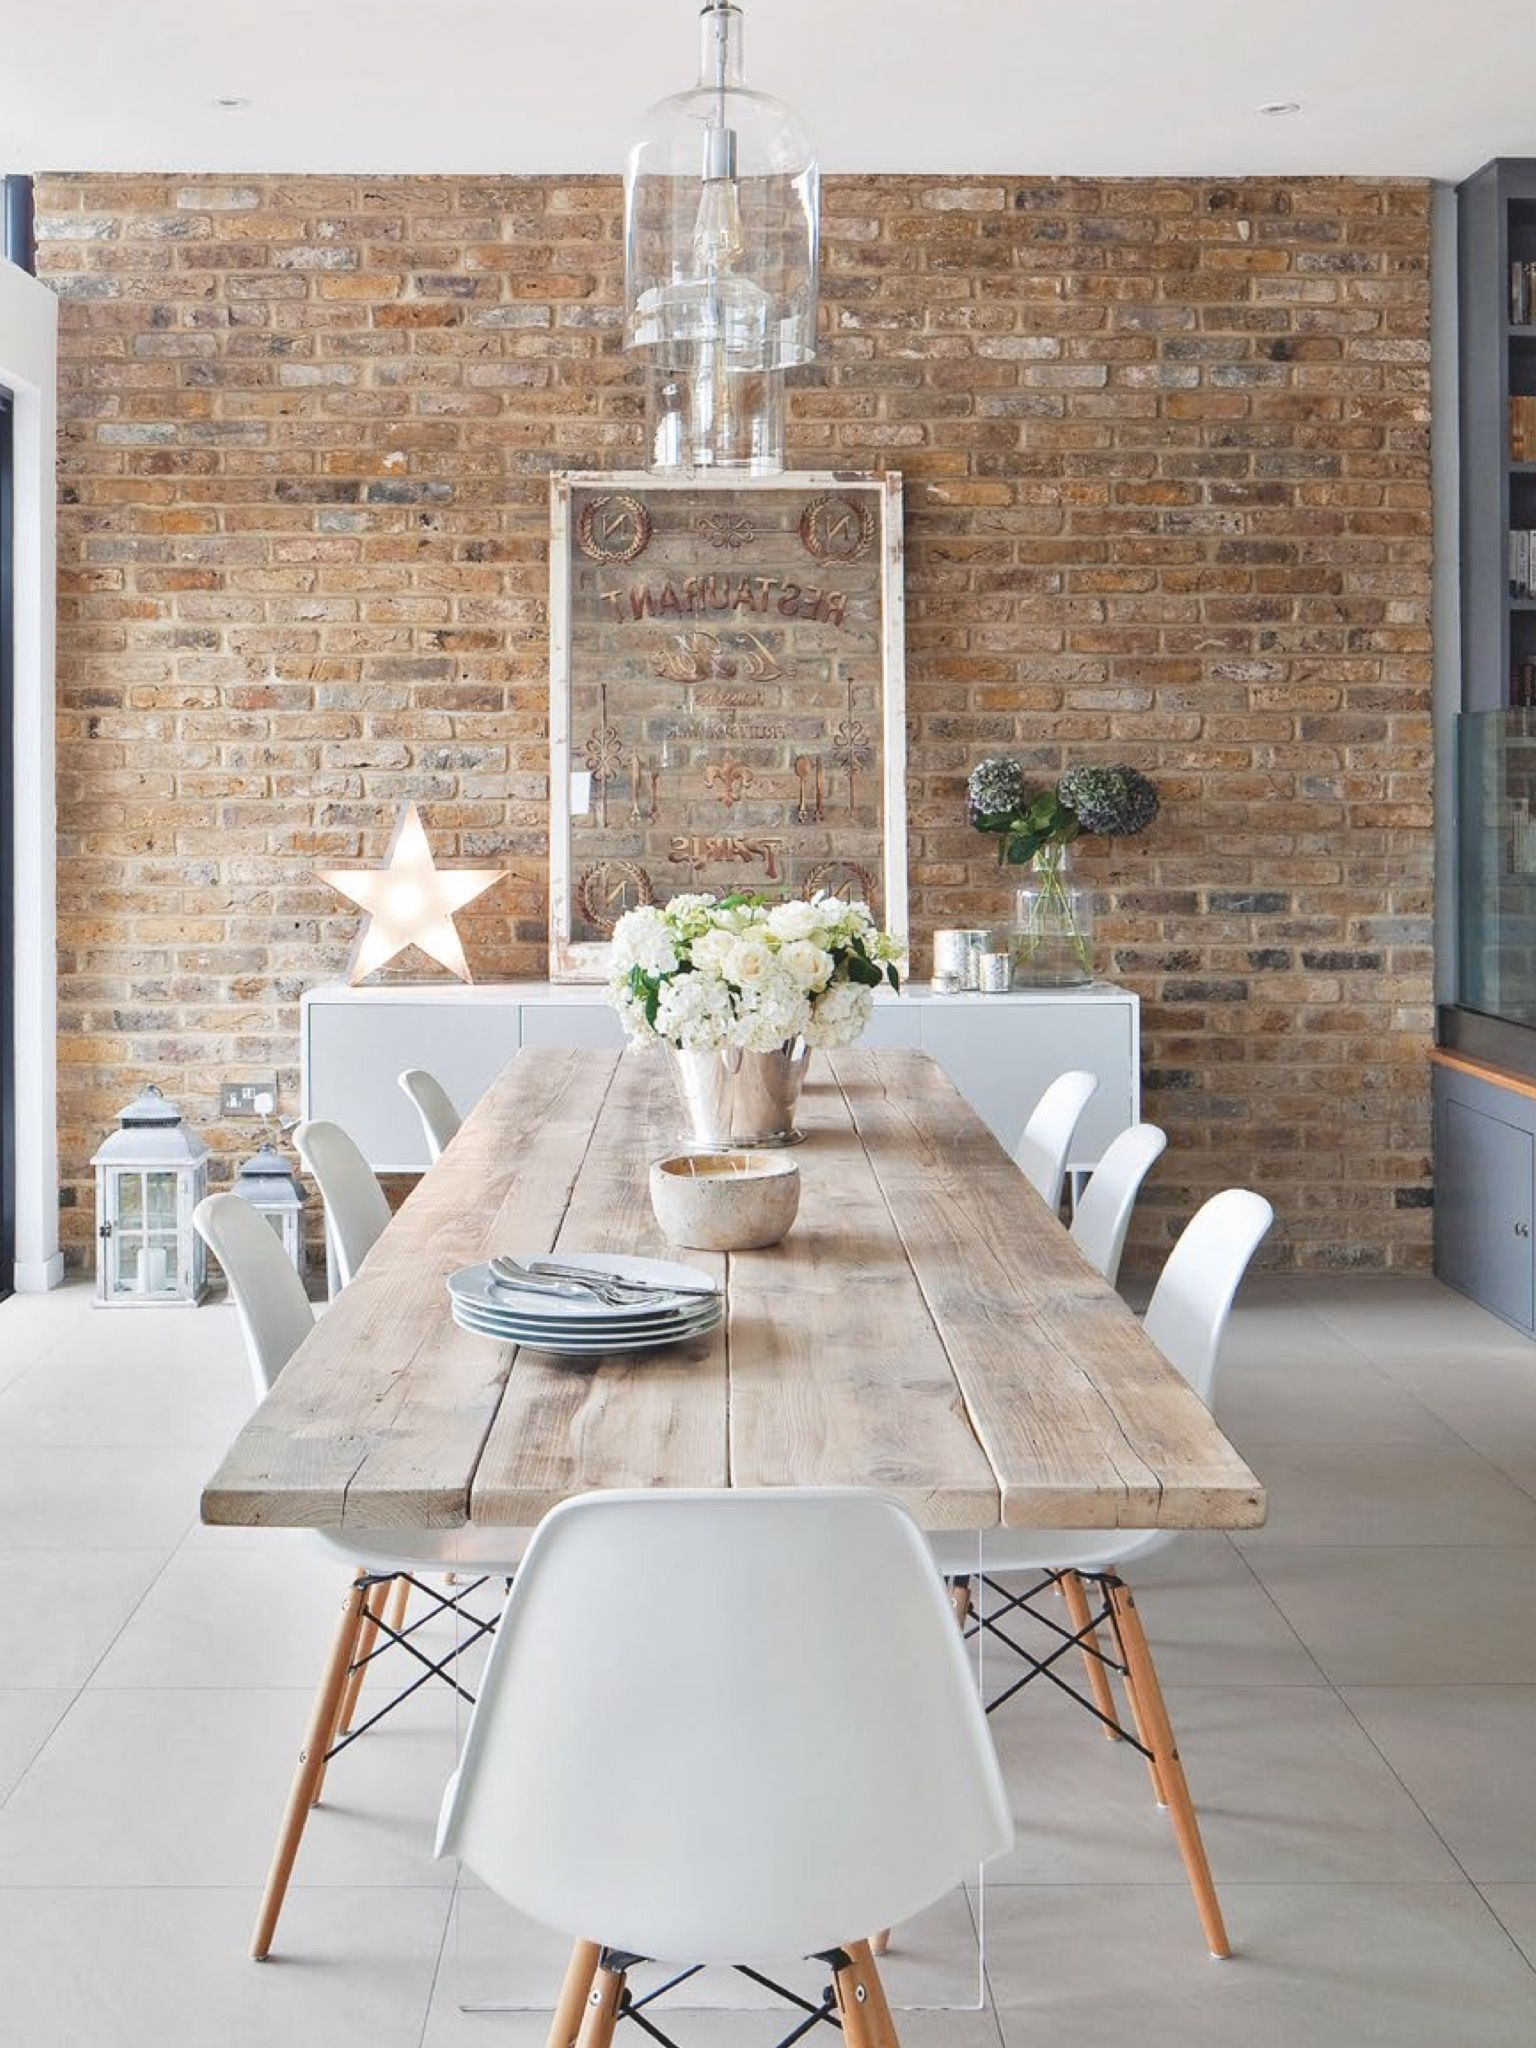 Scandinavian Dining Tables And Chairs Within Most Recently Released Dazzling Scandinavian Dining Room Ideas That Will Steal Your Heart (View 8 of 25)